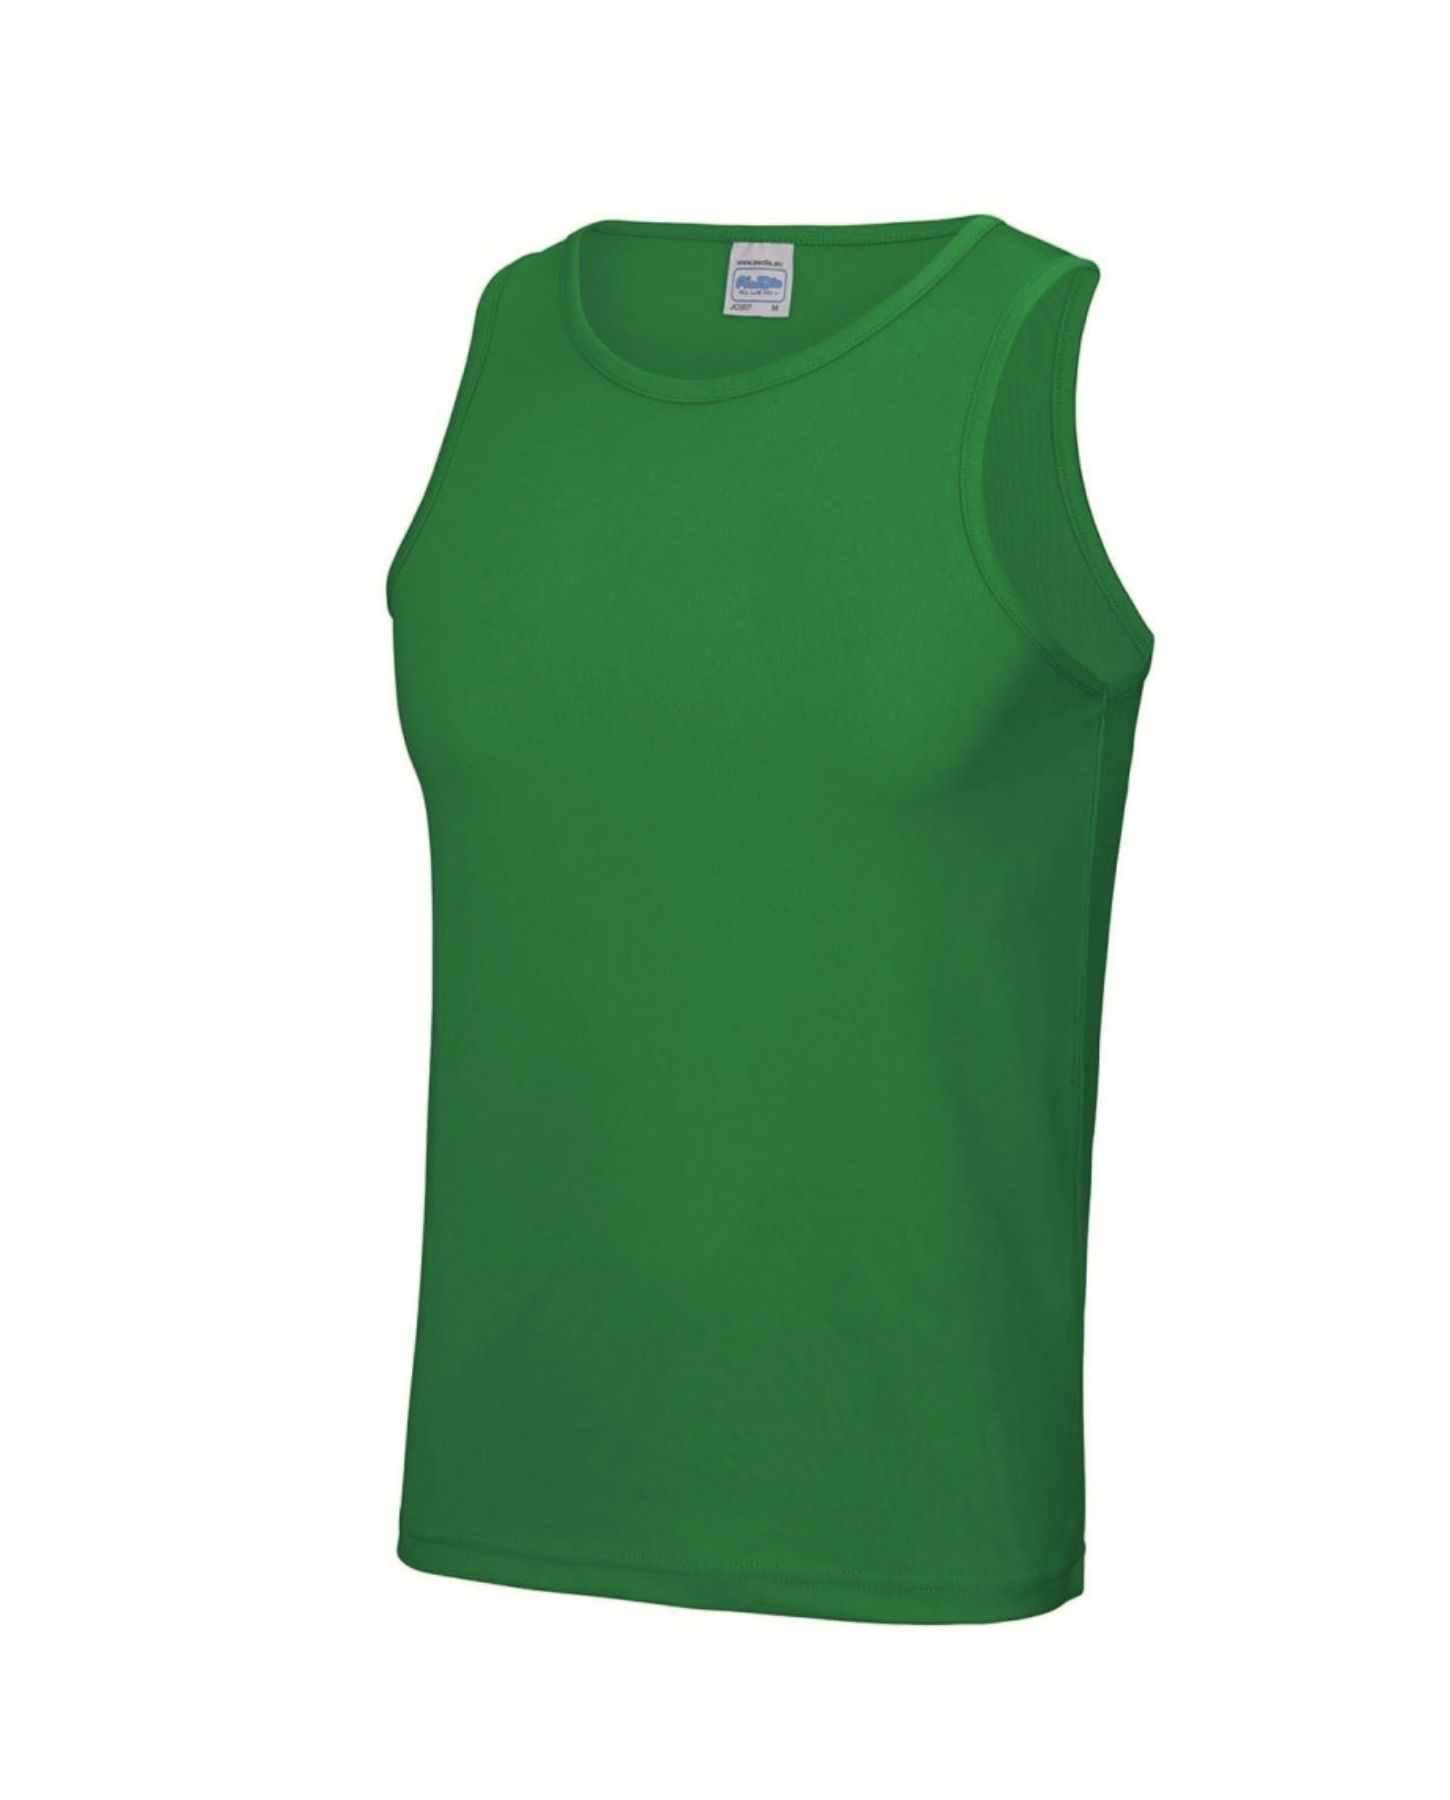 Littleport Runners – Ladyfit Vest